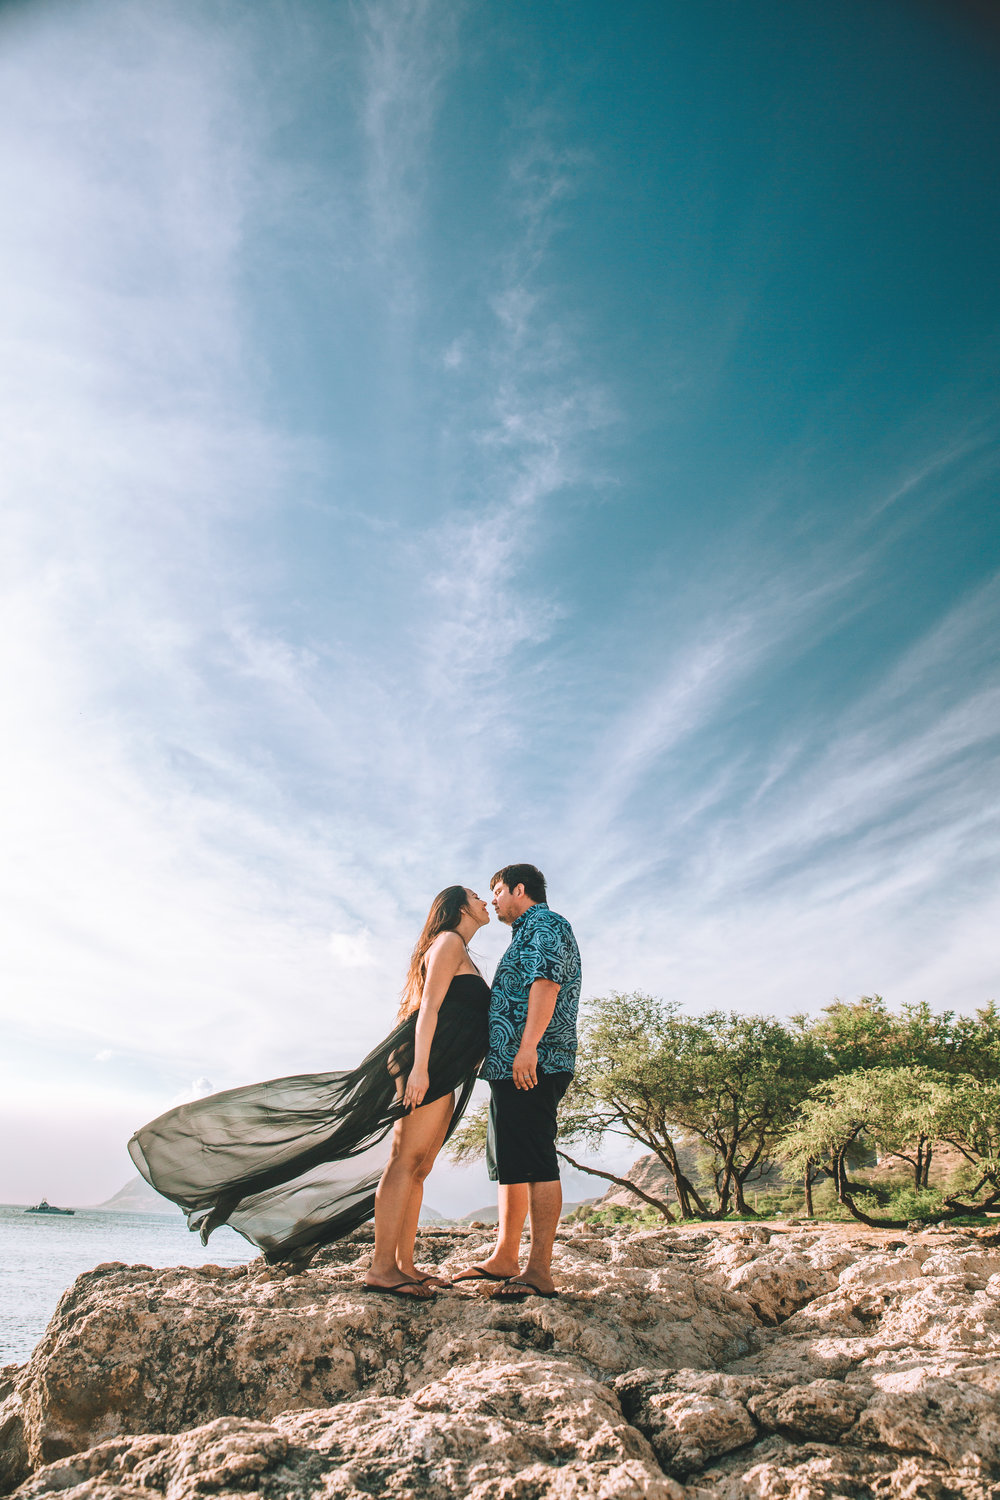 Hawai'i photographer, Oahu photographer, Oahu photography, honolulu photographer, Hawaii maternity photographer, Hawaii maternity photography, genkiphotos, genkimedia, maternity photos